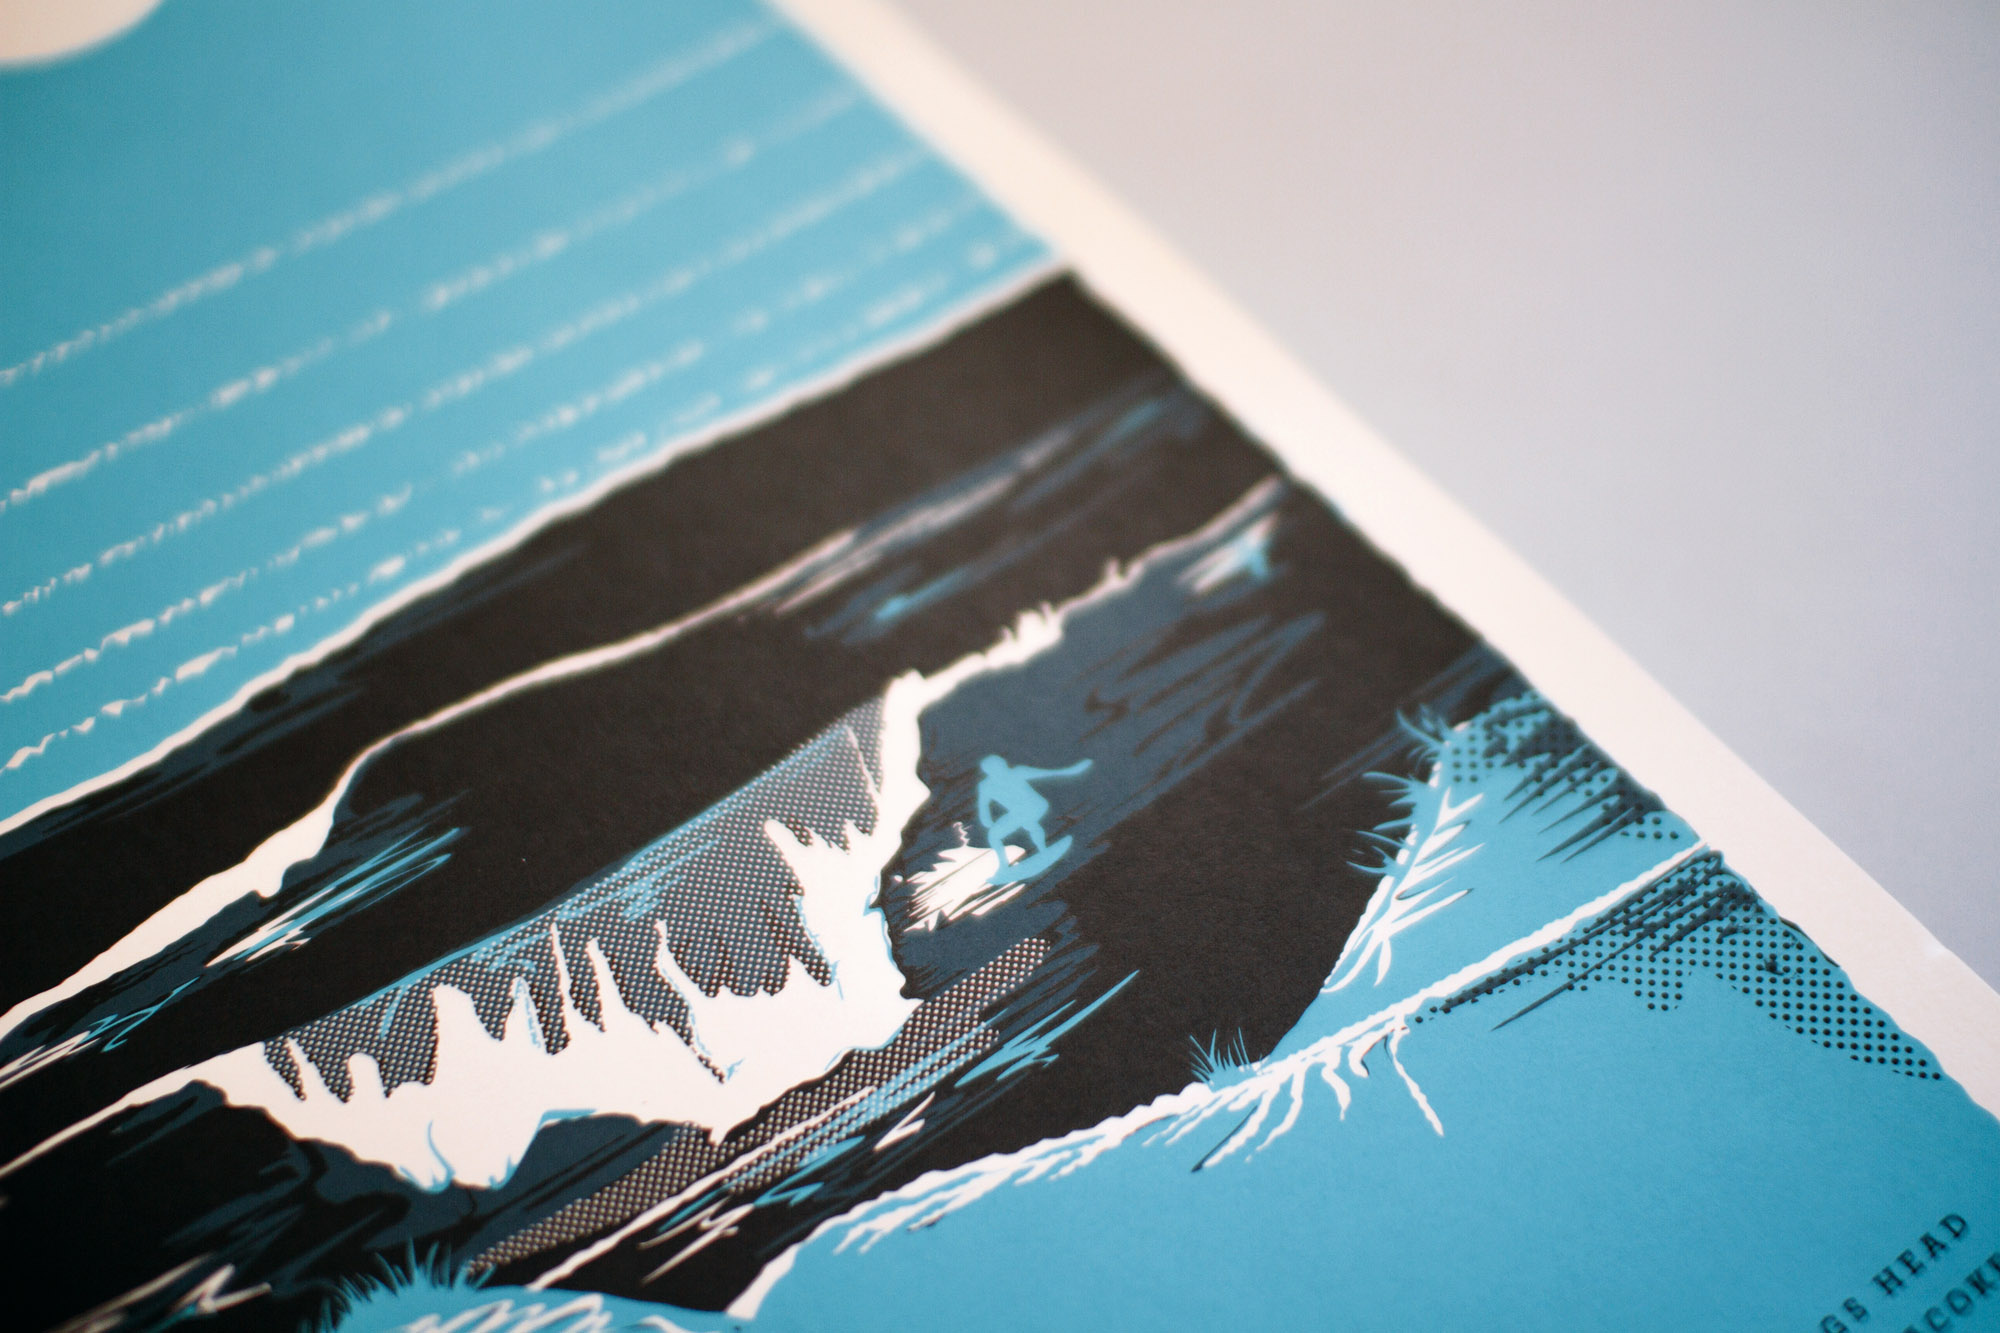 Graphic design and halftone illustrated poster screenprint of detail of surfer riding crashing waves on the blue color option of the outer banks print for bearings guide digital lifestyle publication.